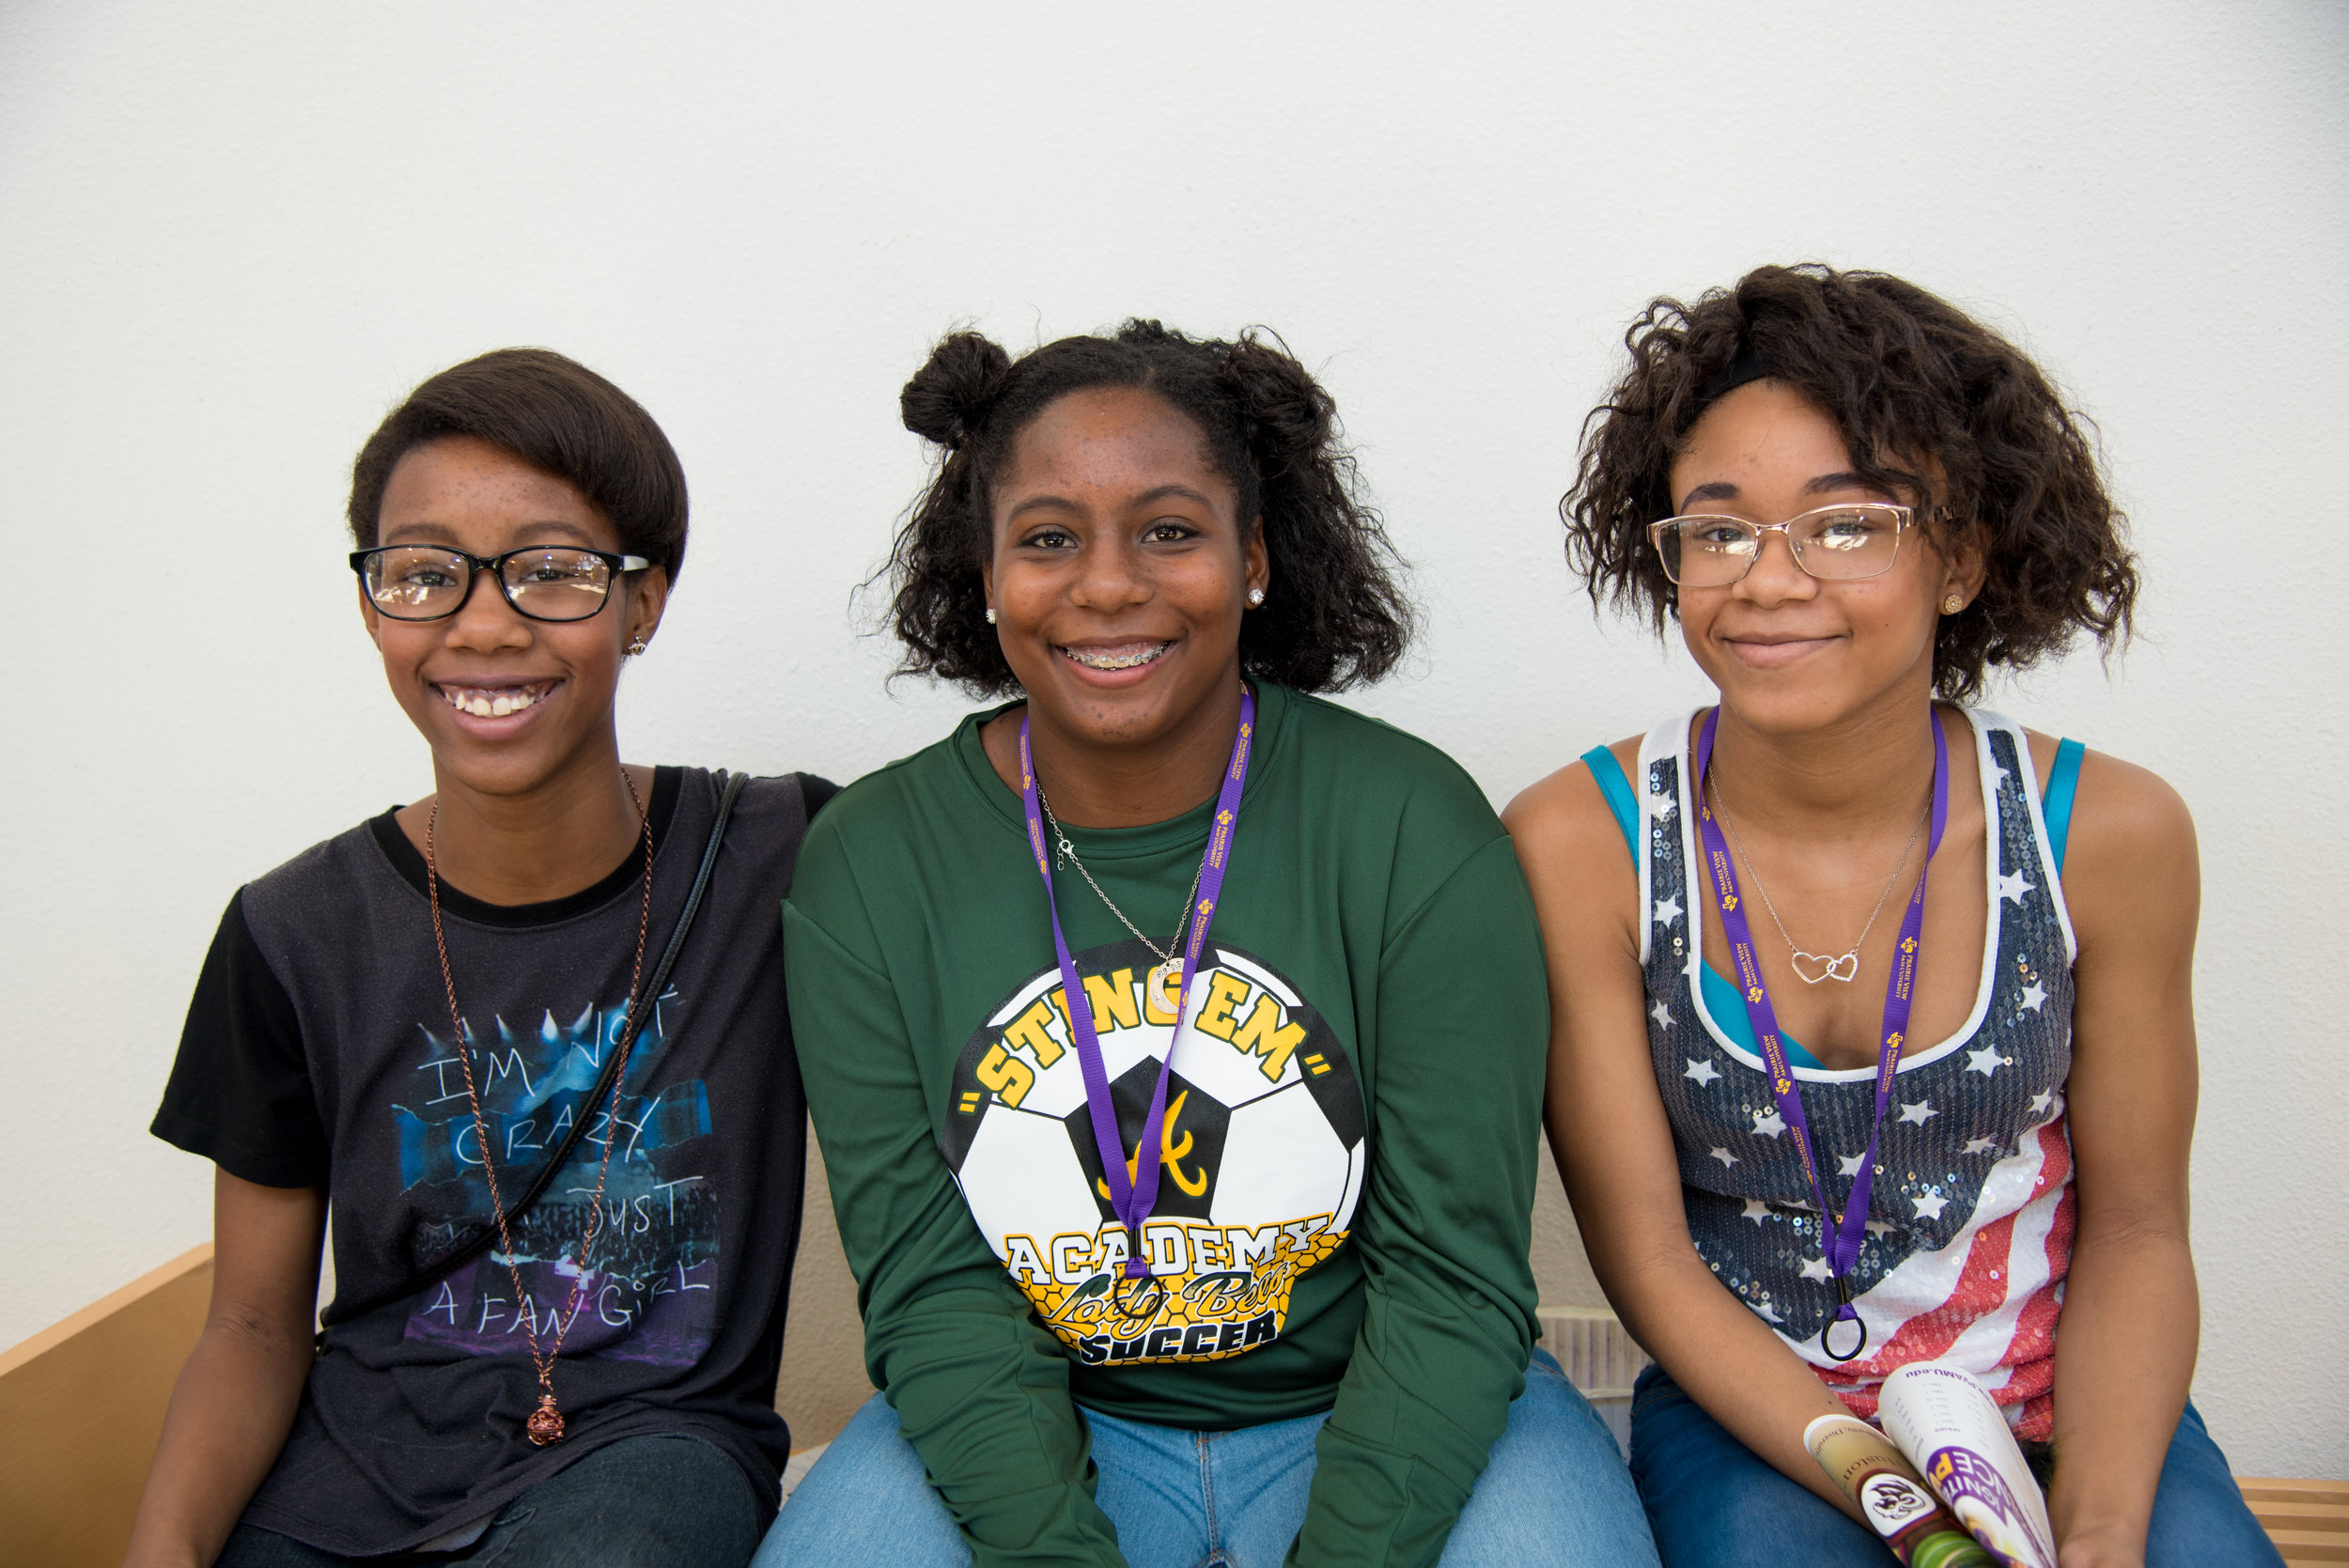 """Left to right: Xzoriah, Jhezyniah, Zataeyiah  """"Today kids are able to do stuff without being told they can't or that they don't belong."""" Zataeyiah, age 13  """"Today is about kids being able to do what they feel to do and hang out with their friends and family."""" Jhezyniah, age 15  """"Today is about kids respecting their elders and them doing the same."""" Xzoriah, age 14"""